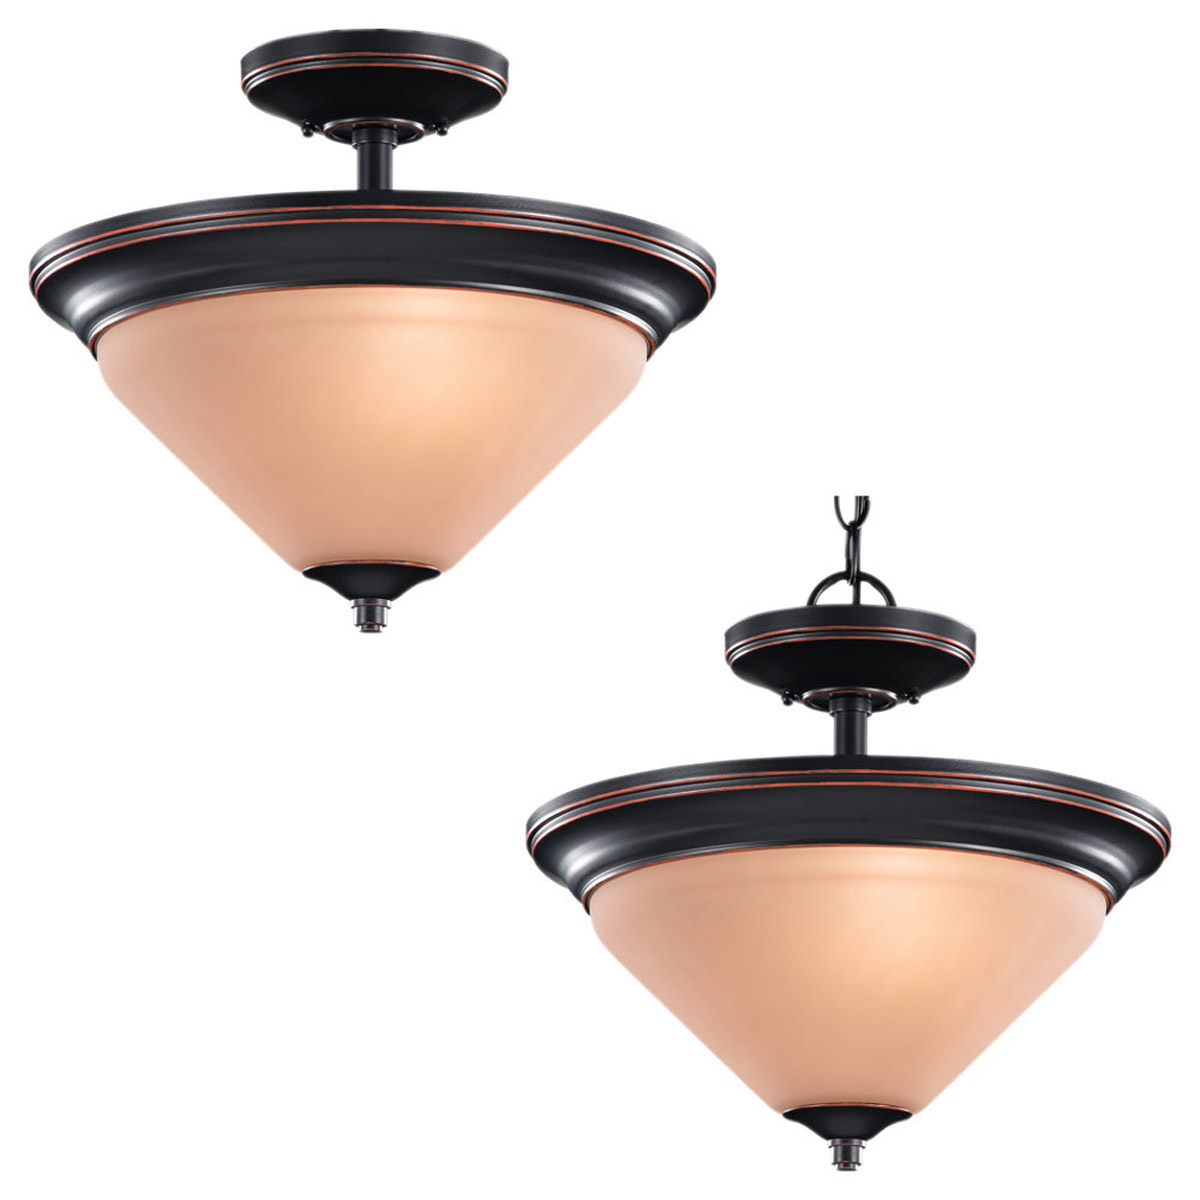 Sea Gull Lighting Belair 2 Light Semi-Flush / Pendant in Vintage Brown 77790-862